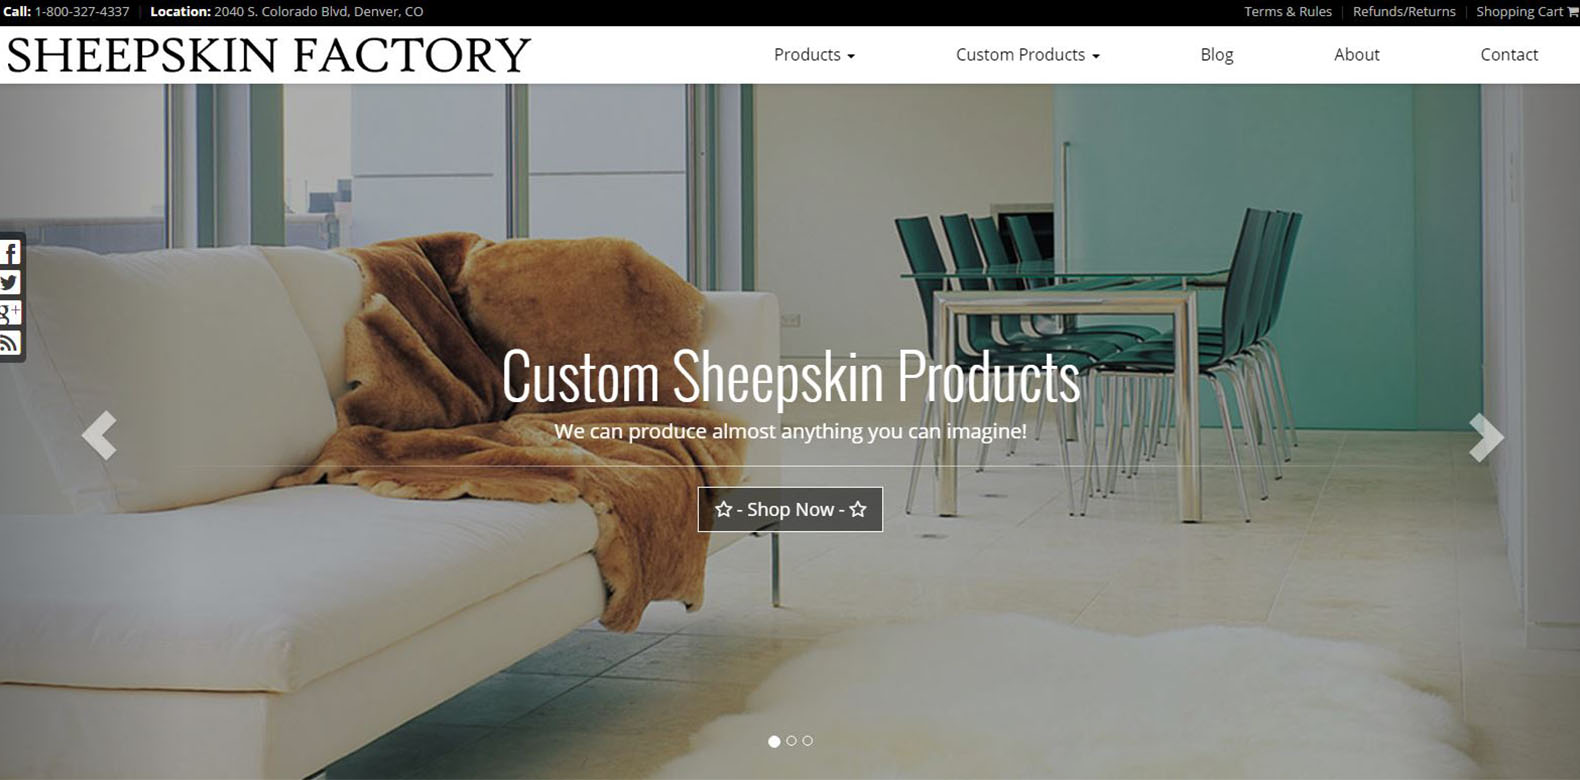 New Website Launched: Sheepskin Factory